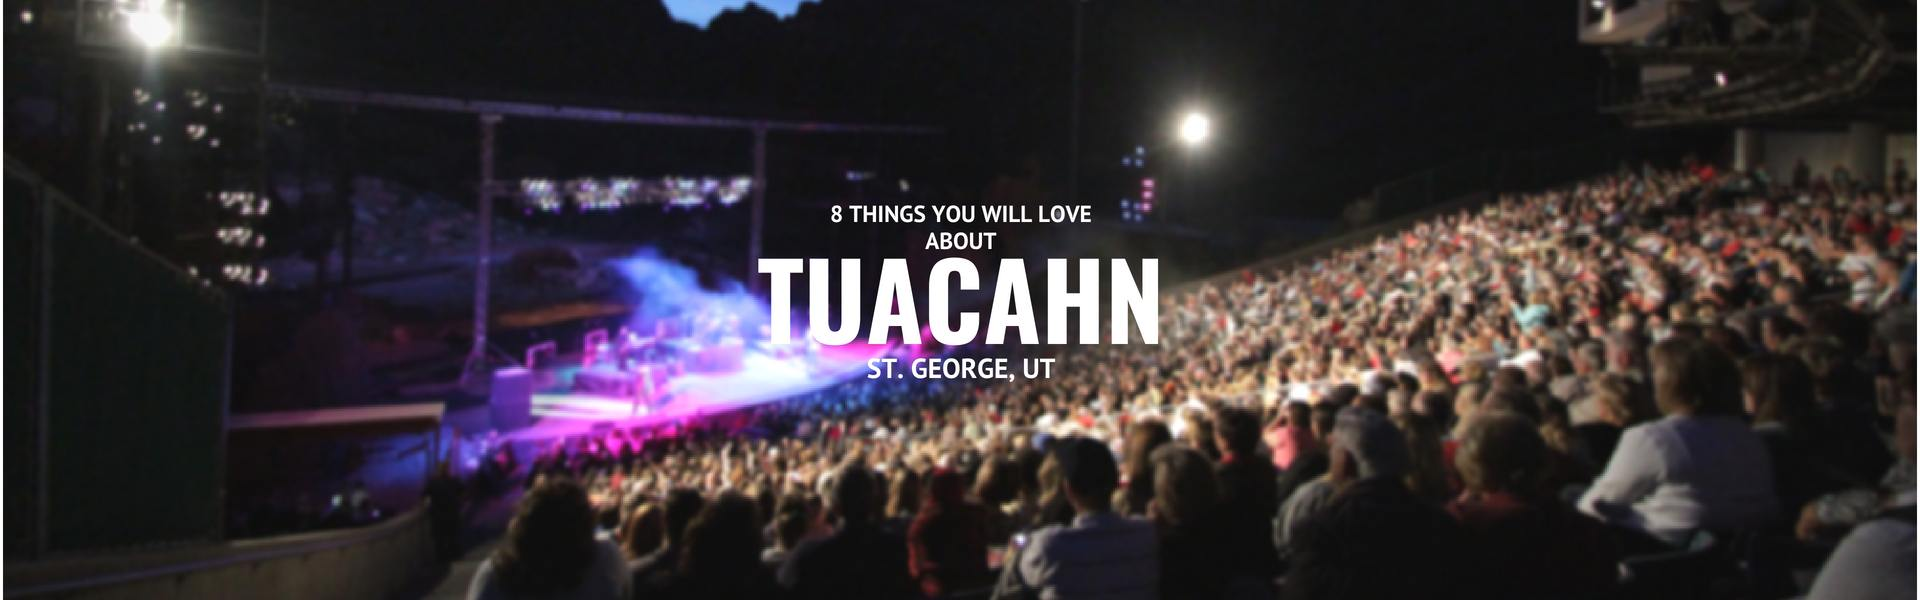 8 Things You Will Love About Tuacahn